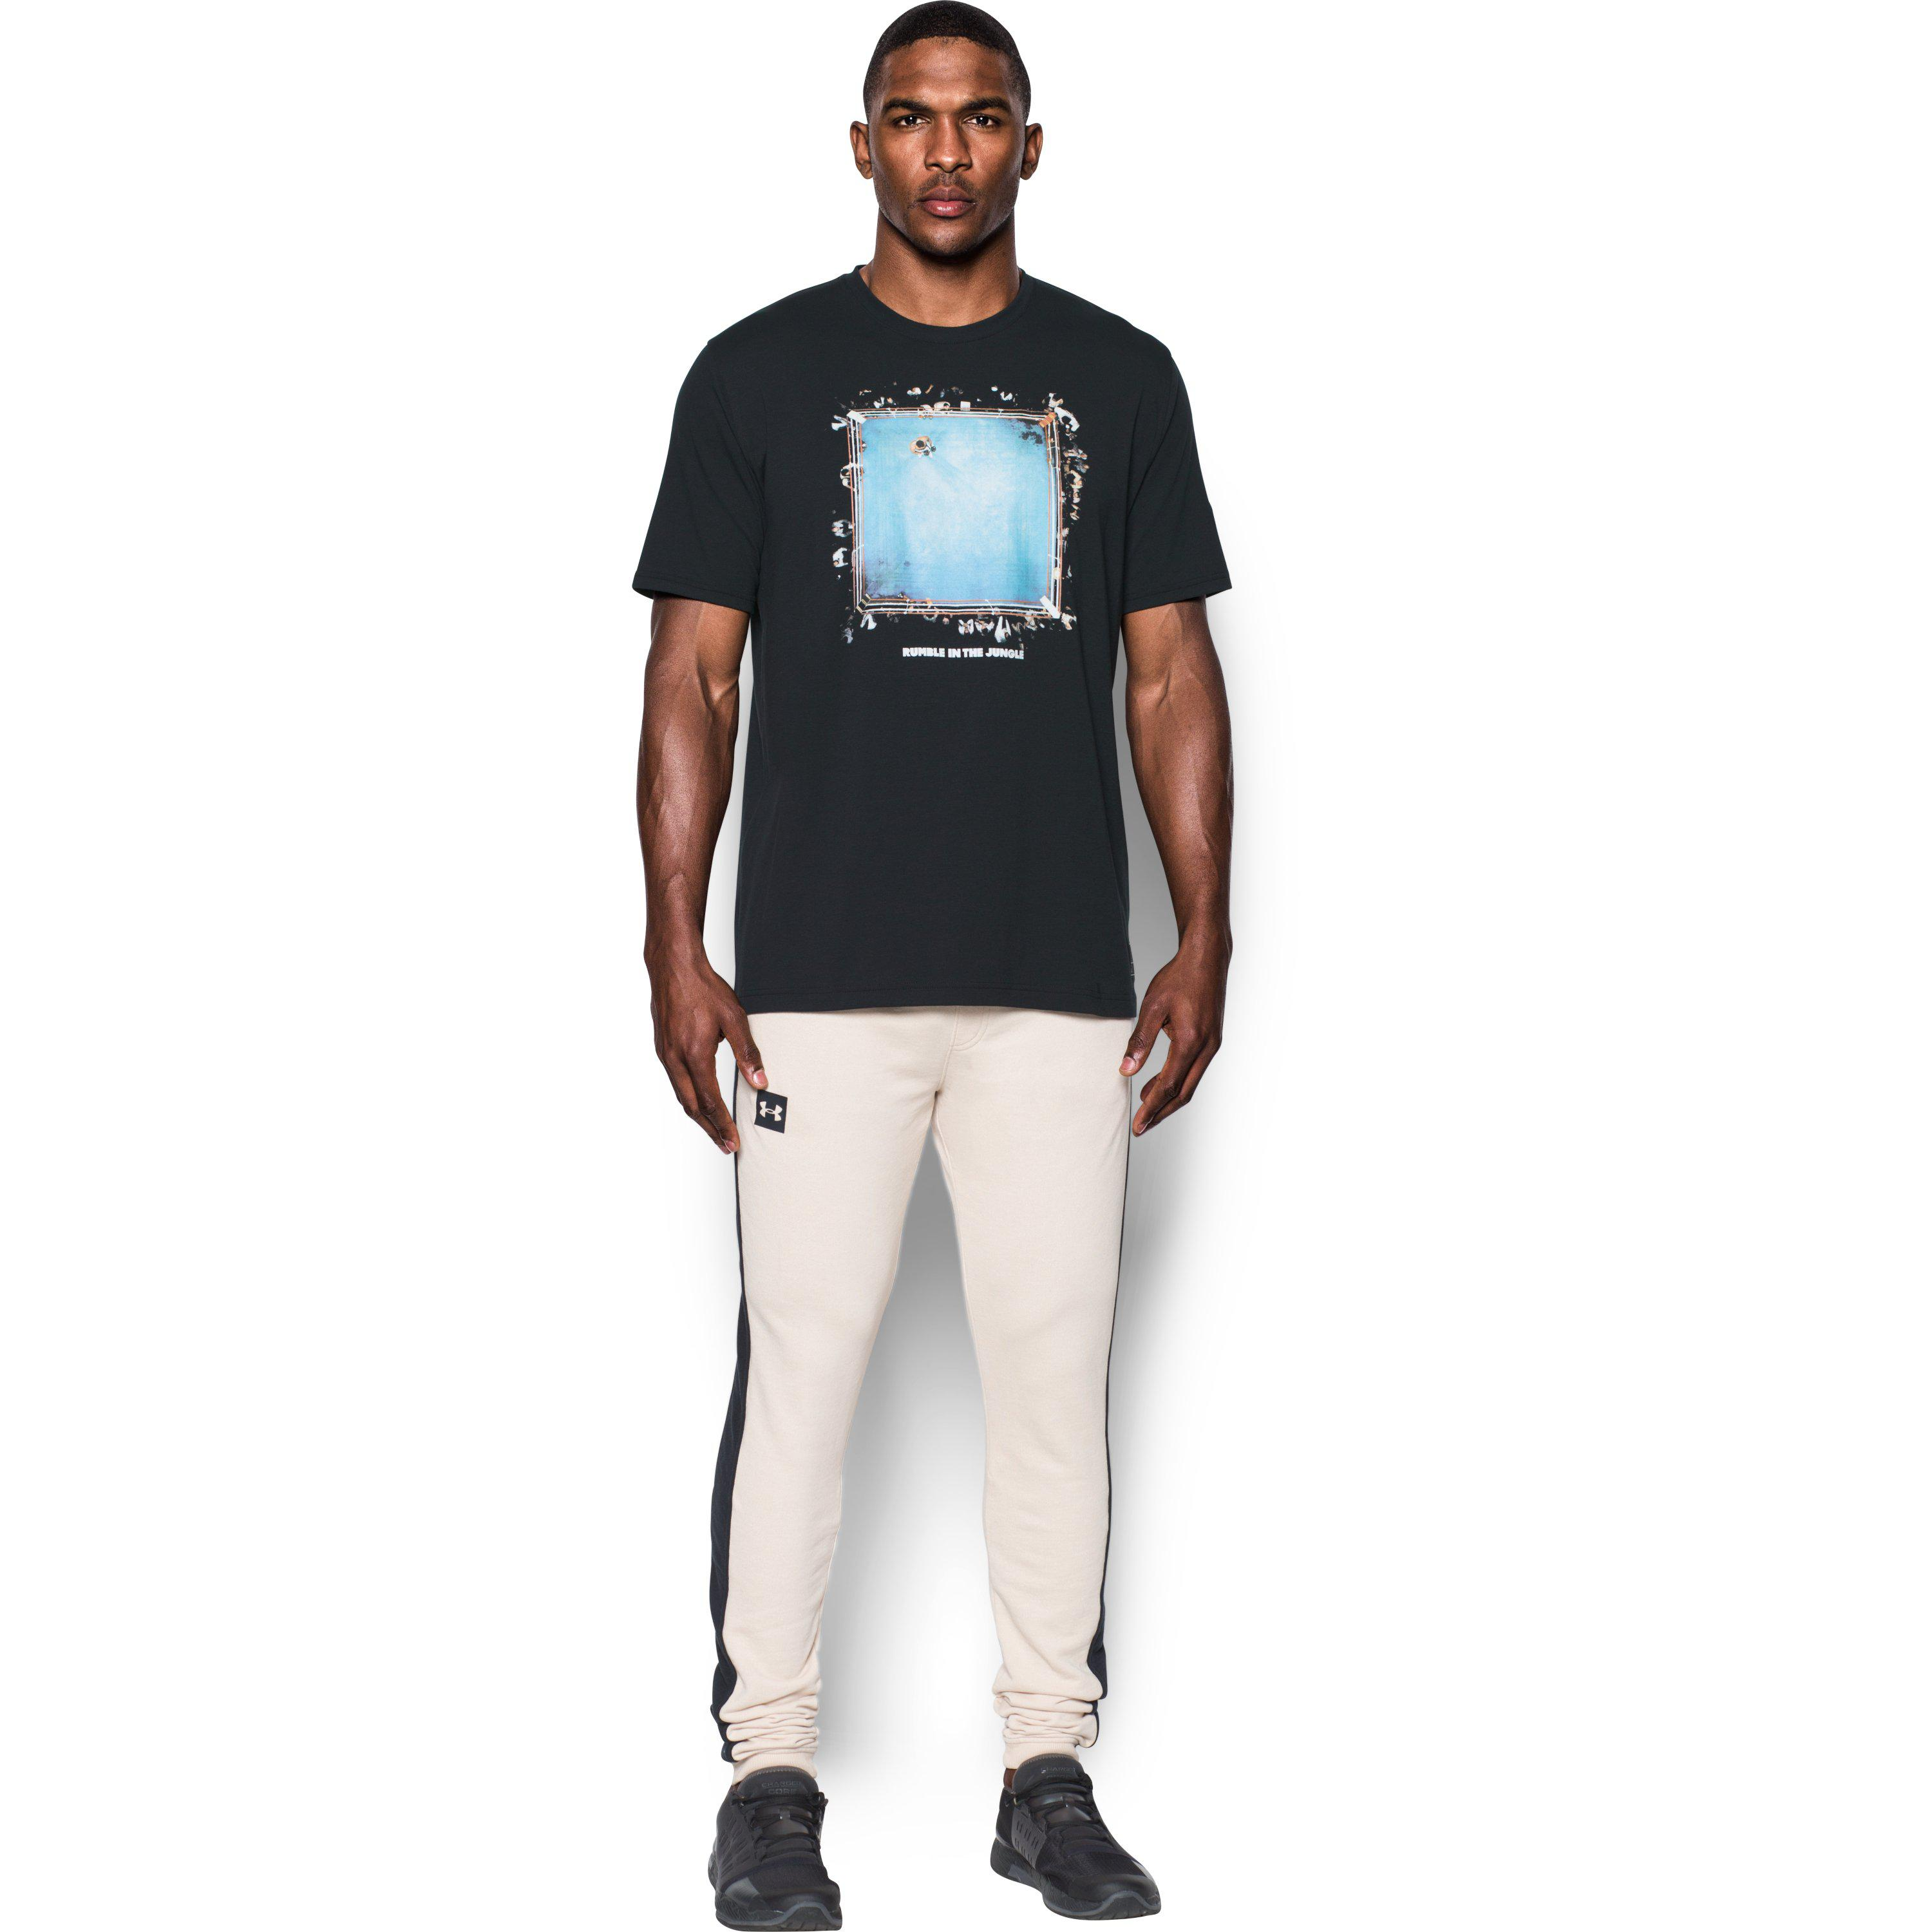 03e212e7 Lyst - Under Armour Men's Ua X Ali Rumble In The Ring T-shirt in ...